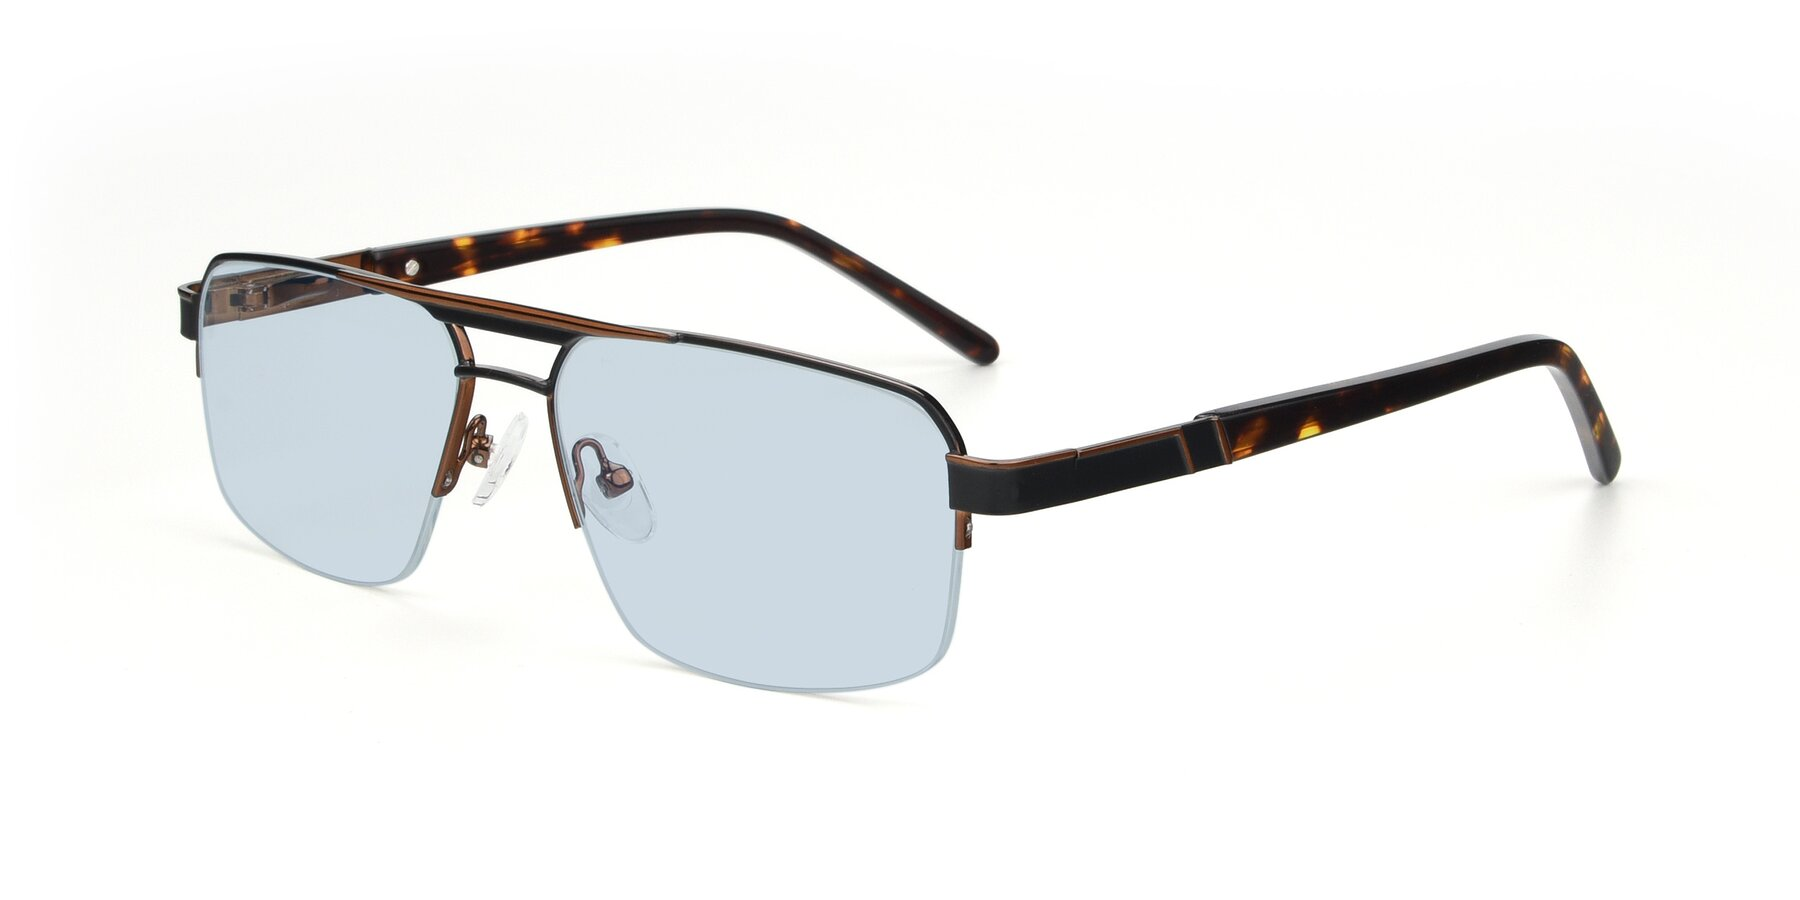 Angle of 19004 in Black-Bronze with Light Blue Tinted Lenses